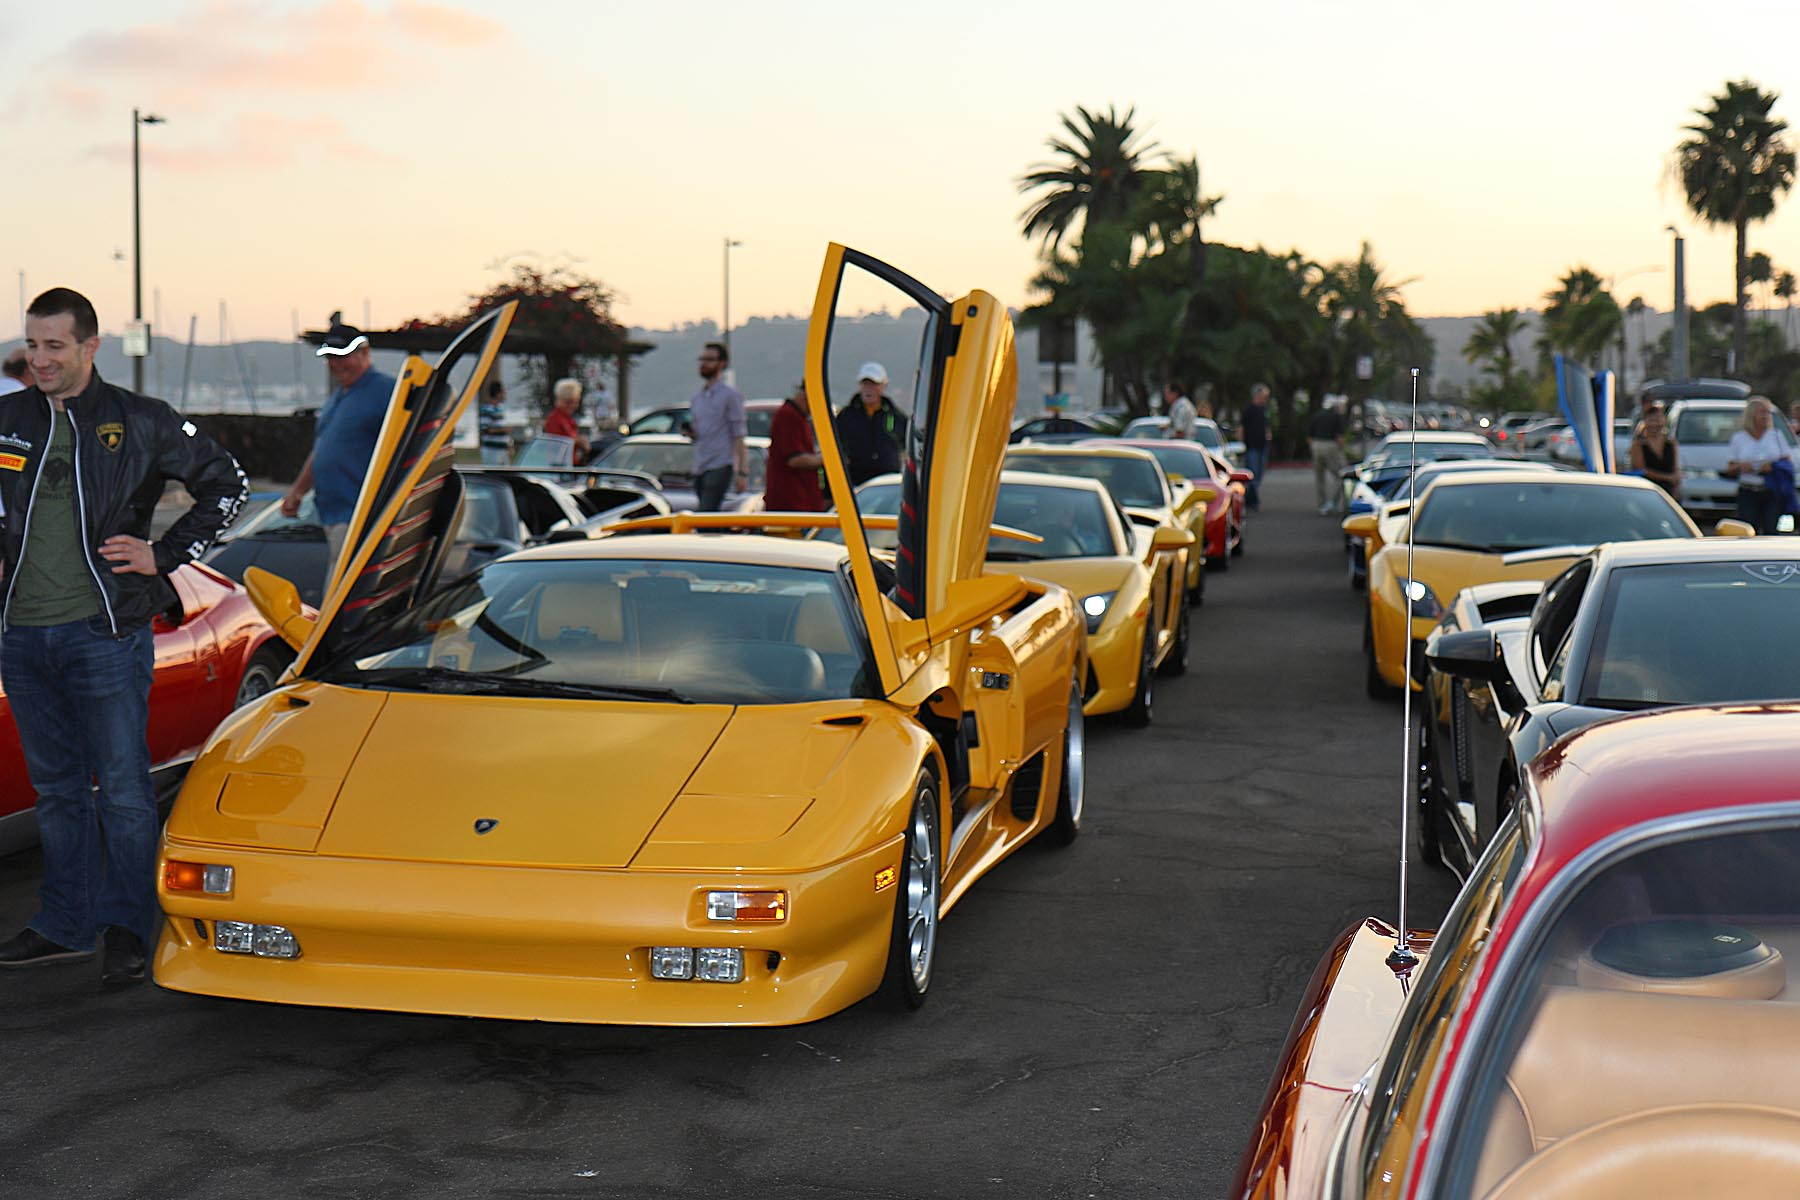 Friday Night Assembly - Heading for the Automotive Museum in Balboa Park